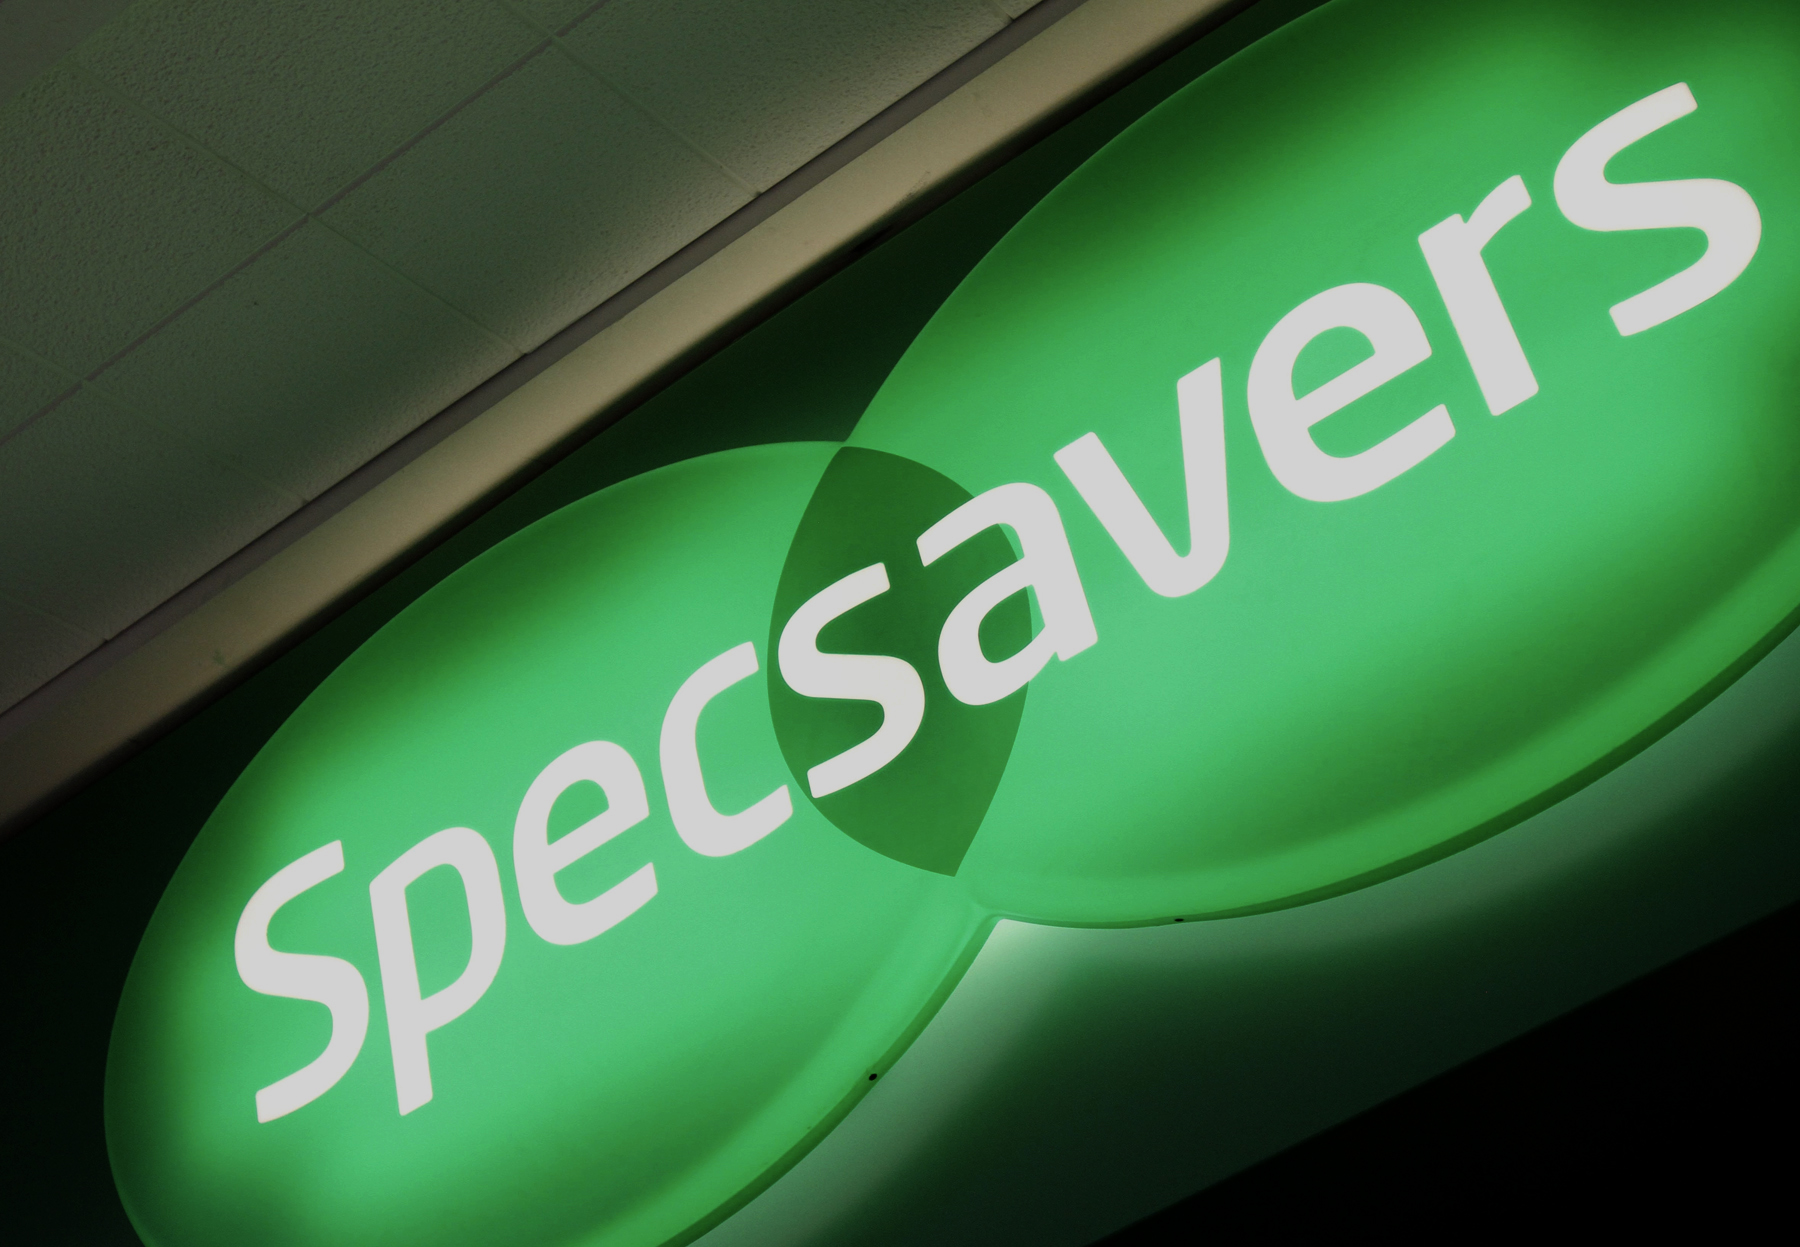 Sir Steve Redgrave joins Specsavers as ambassador